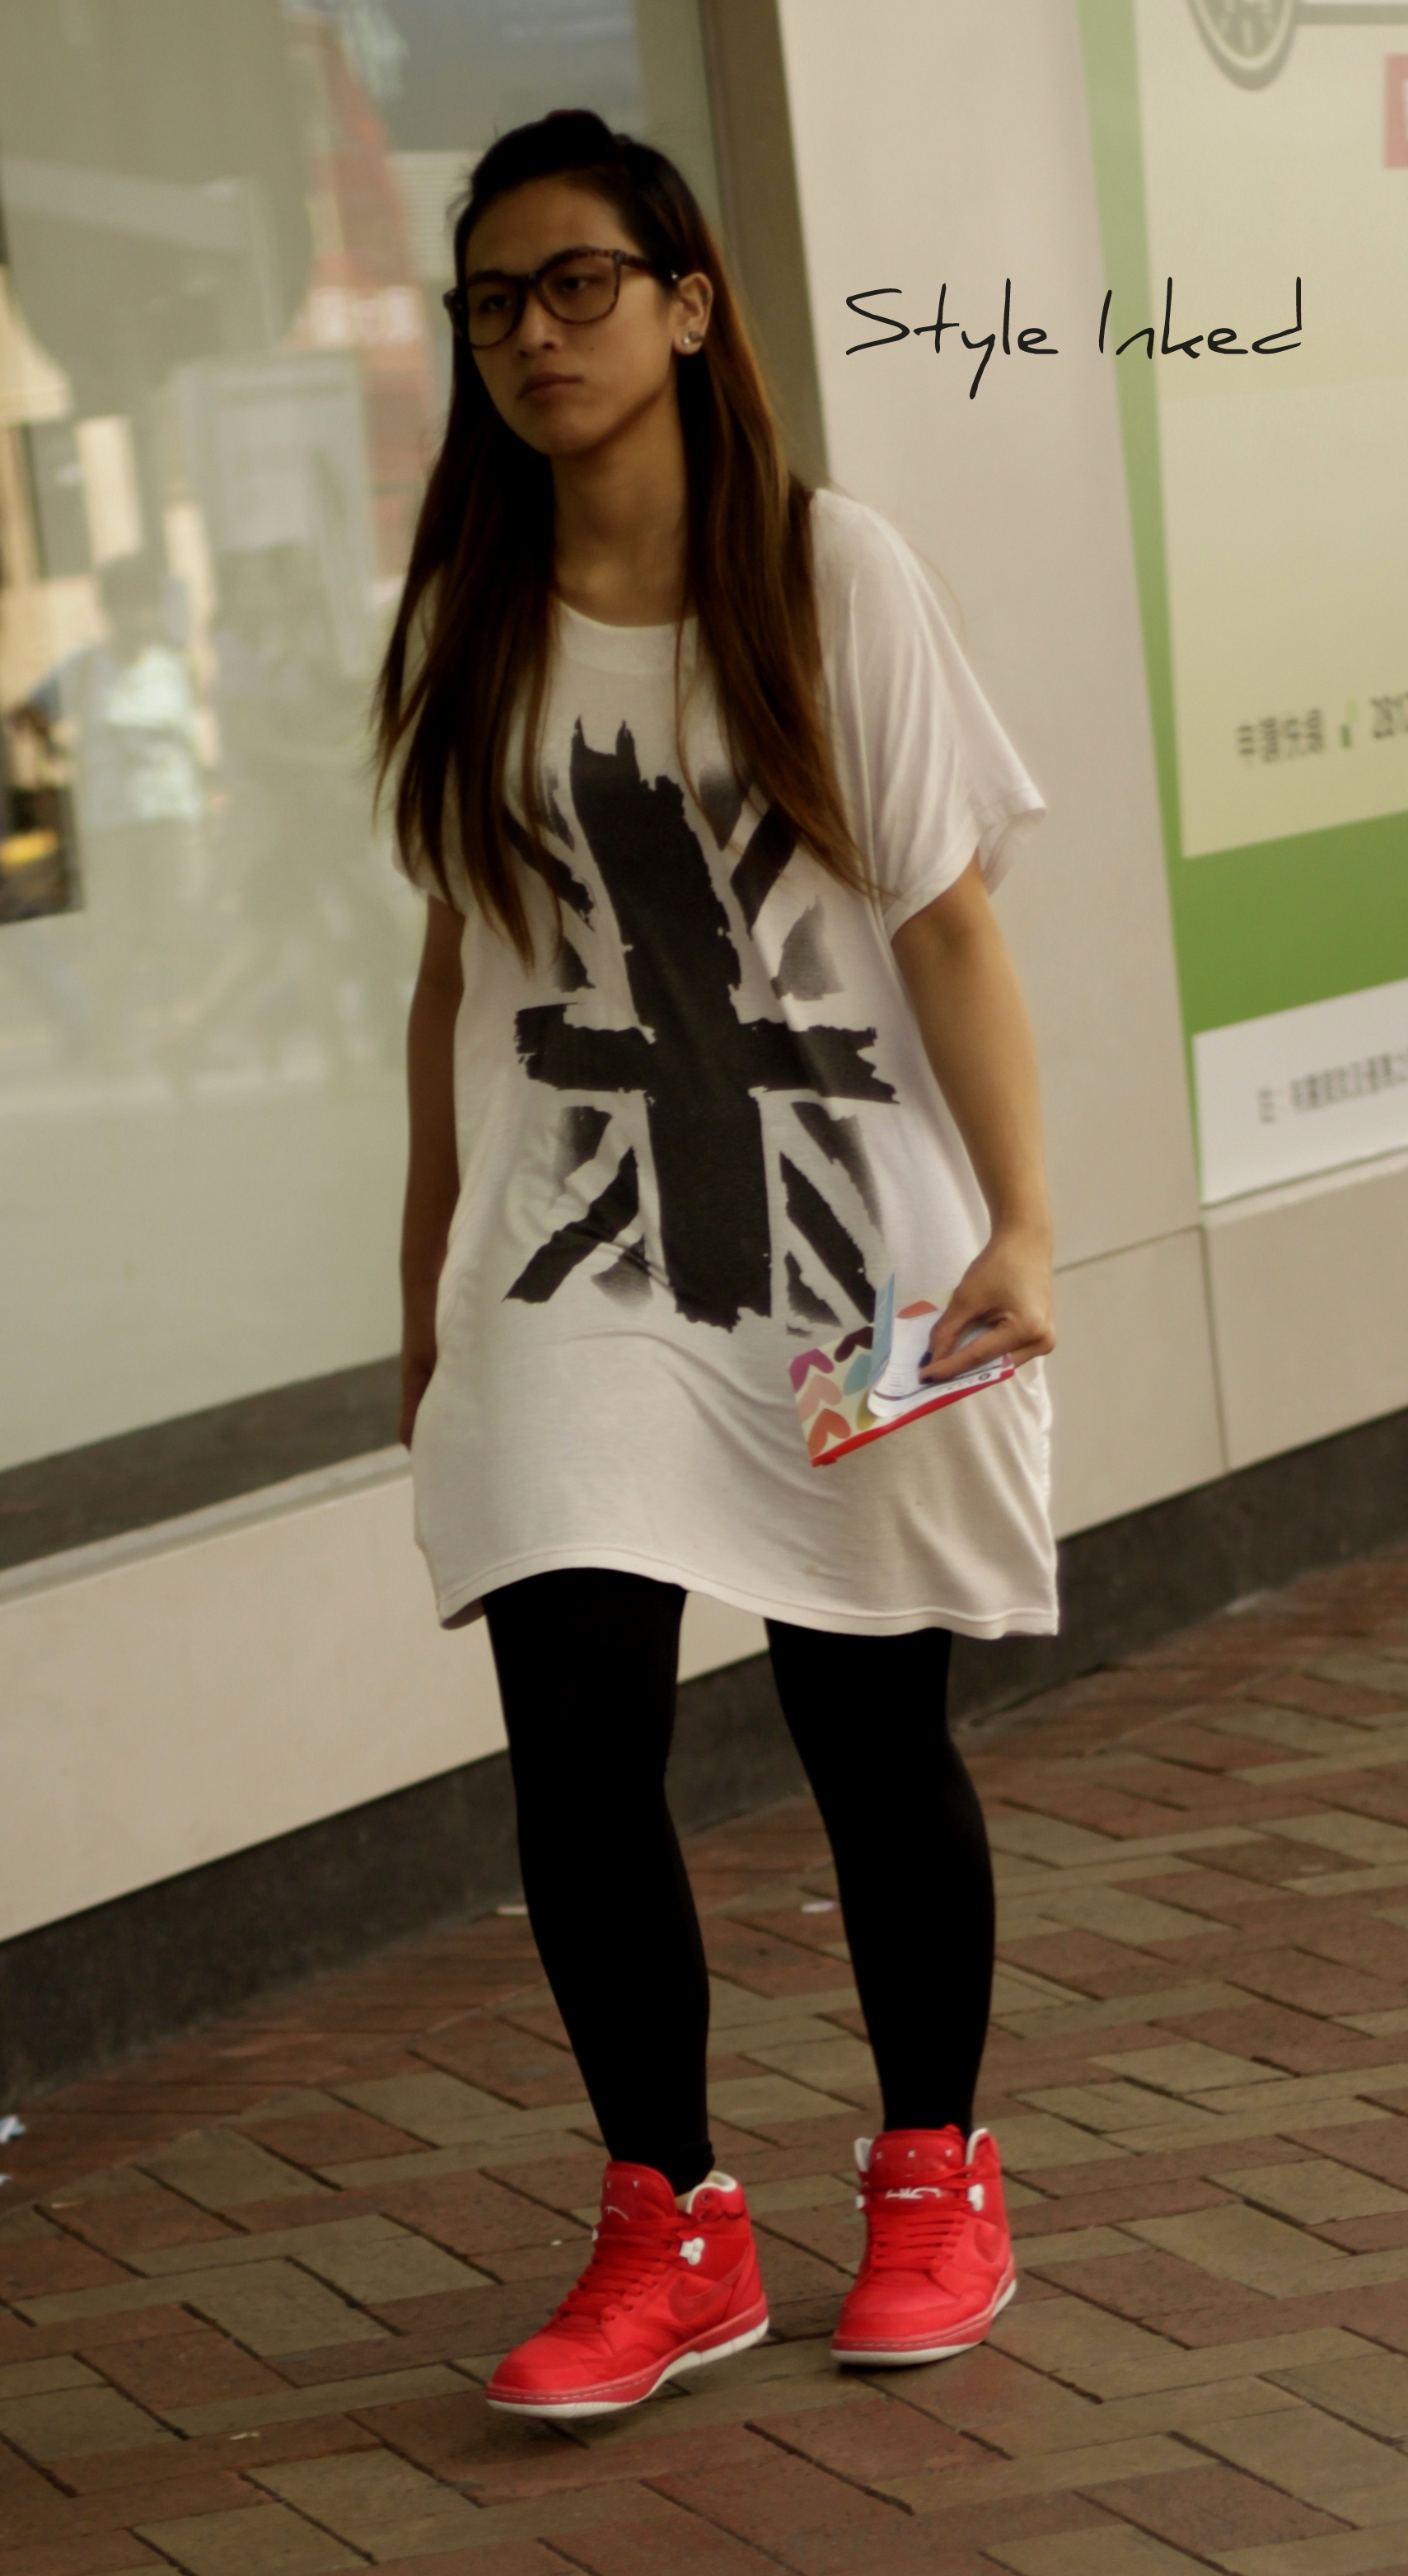 Hong Kong Street Fashion Style Inked